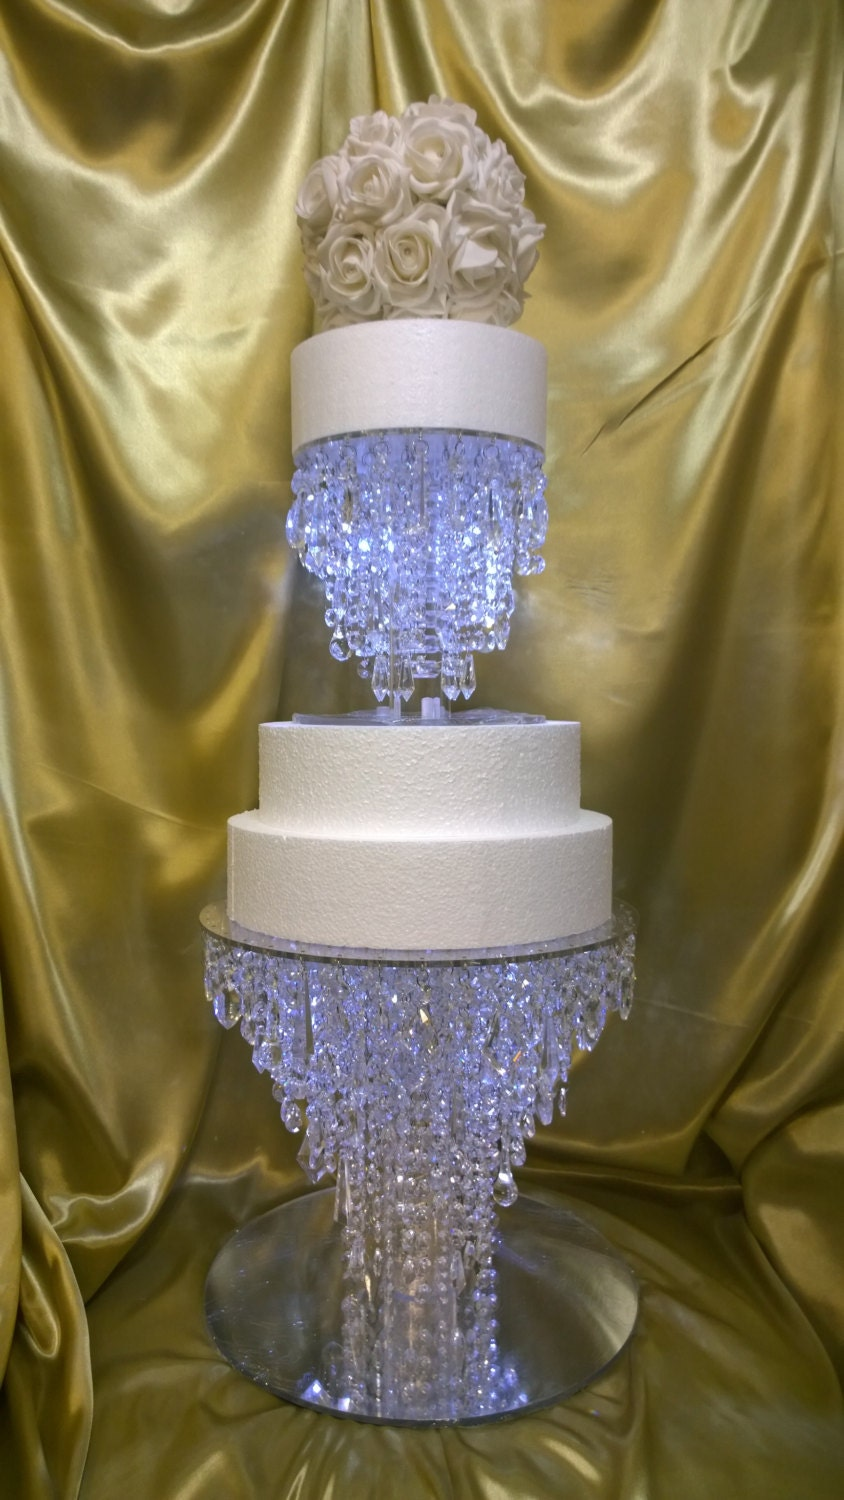 The Ice Crystal Cake Stand 2 Tier Set Glass